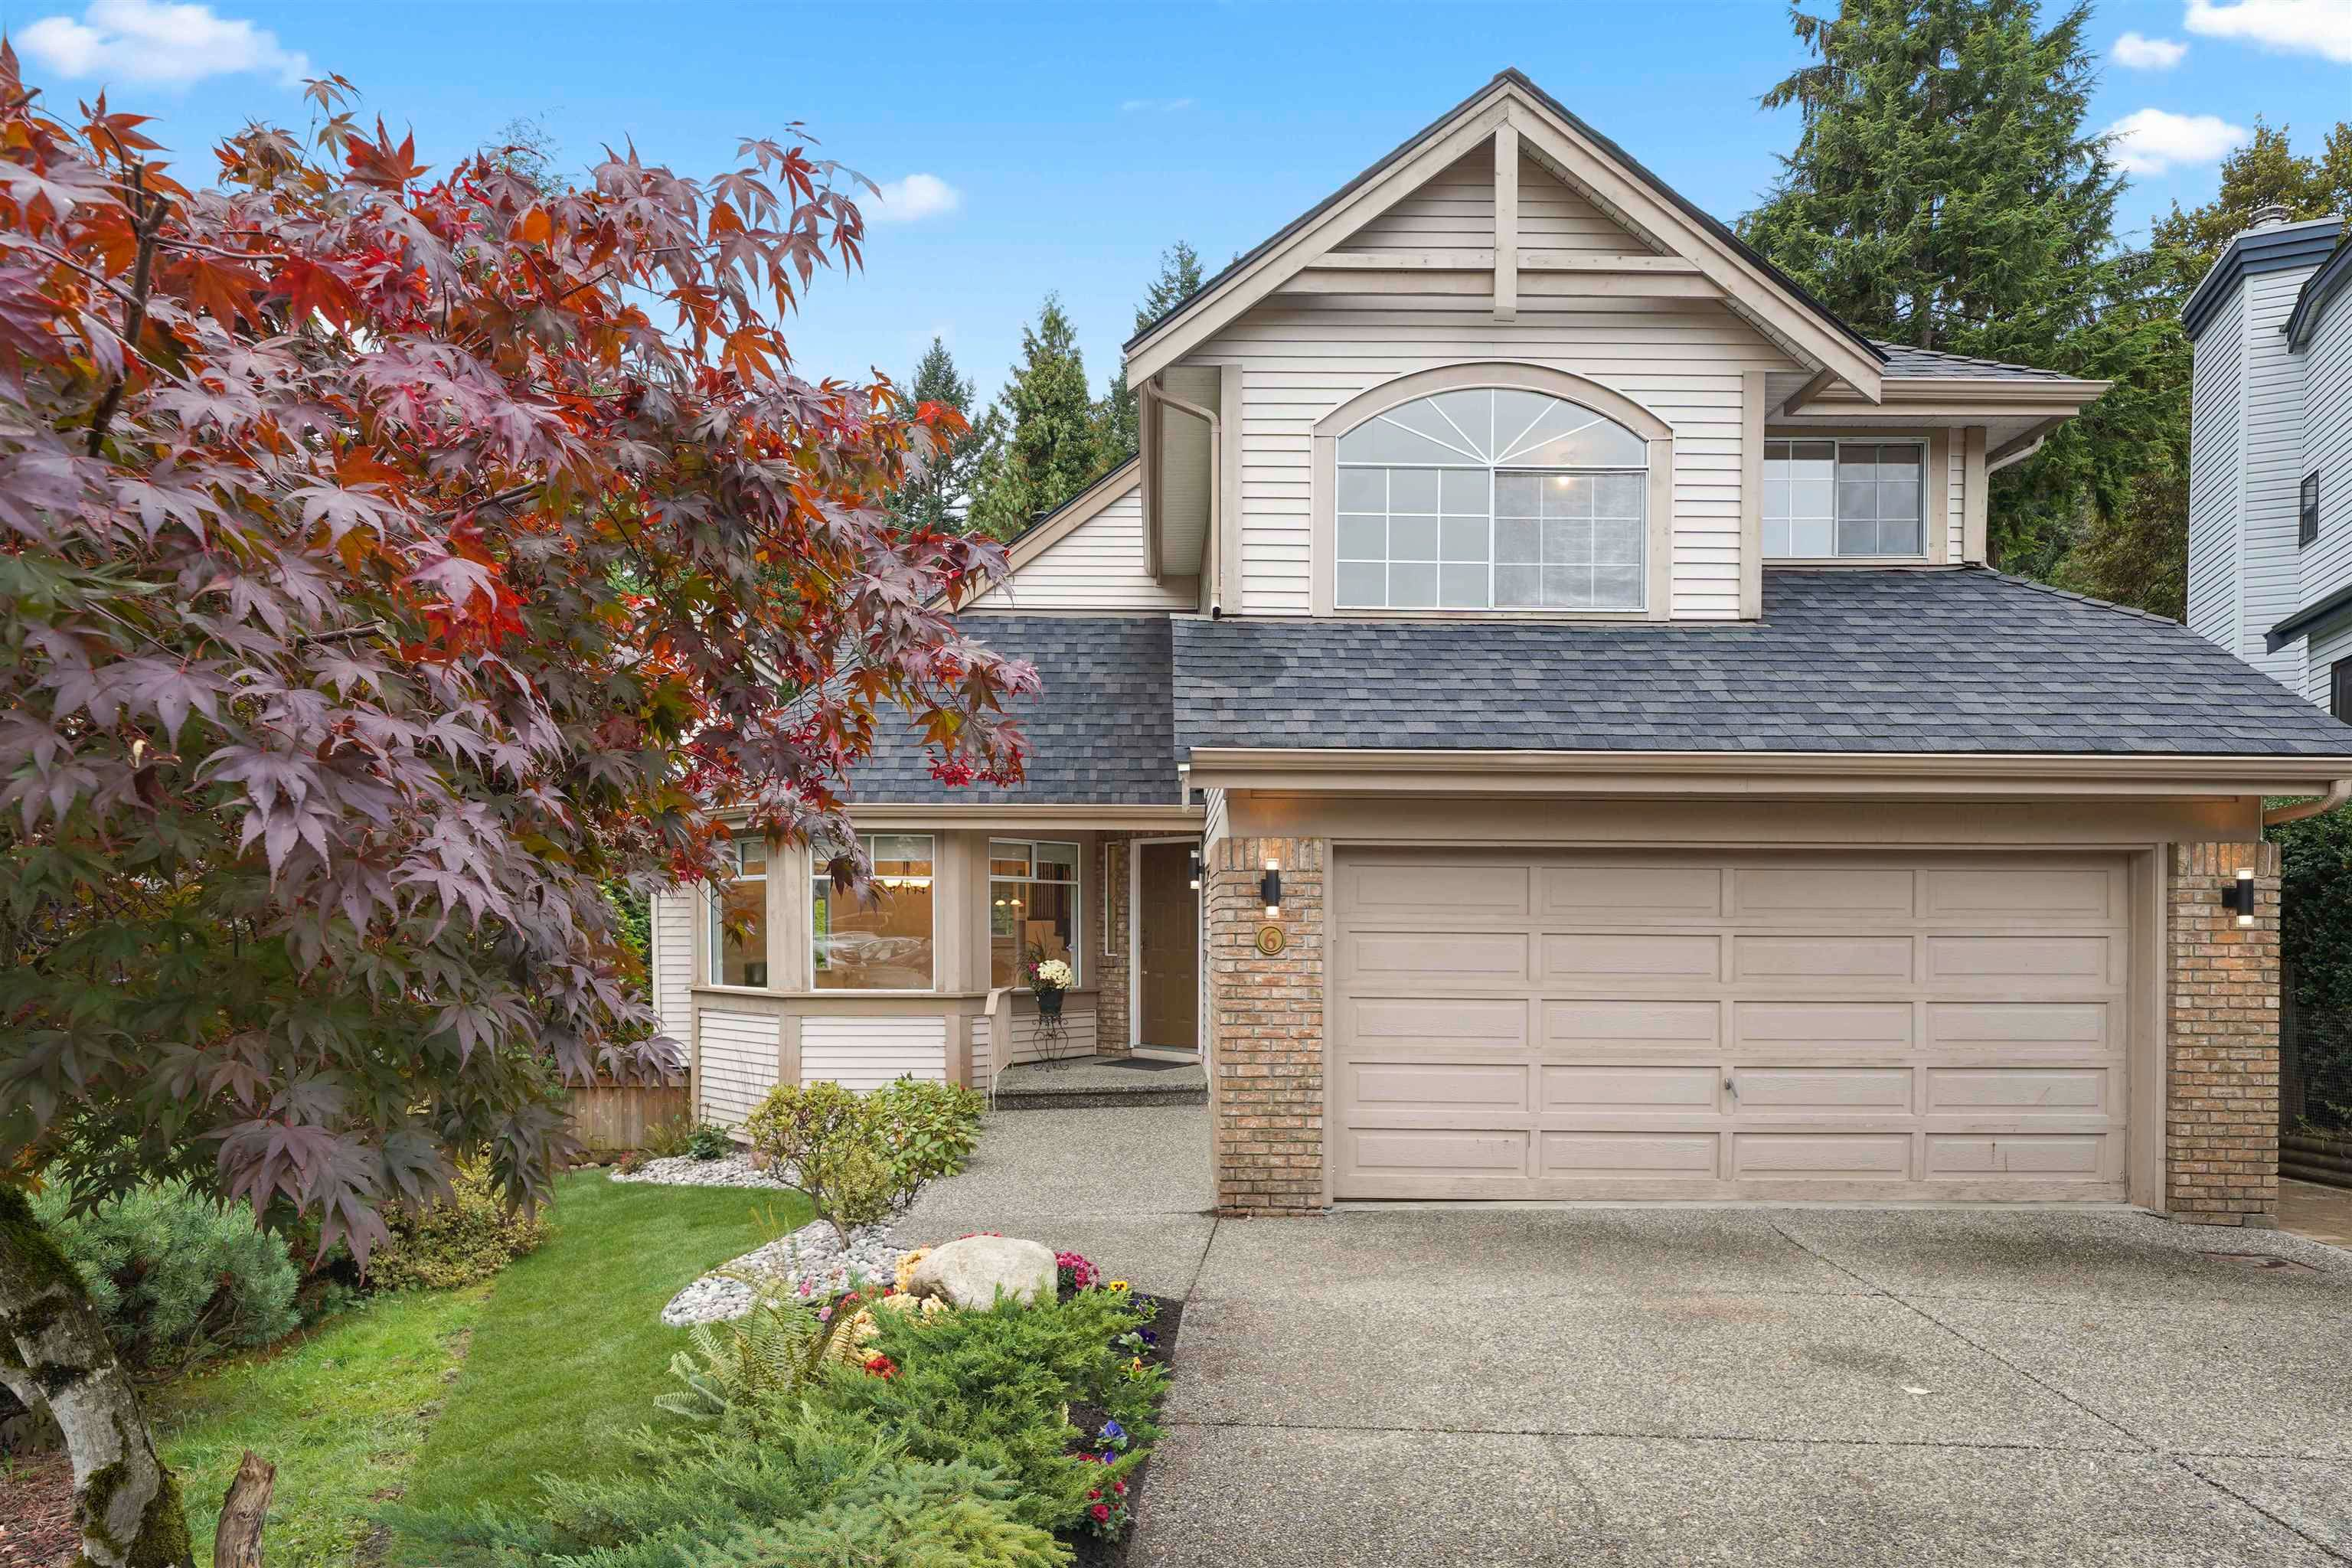 Main Photo: 6 ASPEN Court in Port Moody: Heritage Woods PM House for sale : MLS®# R2623703